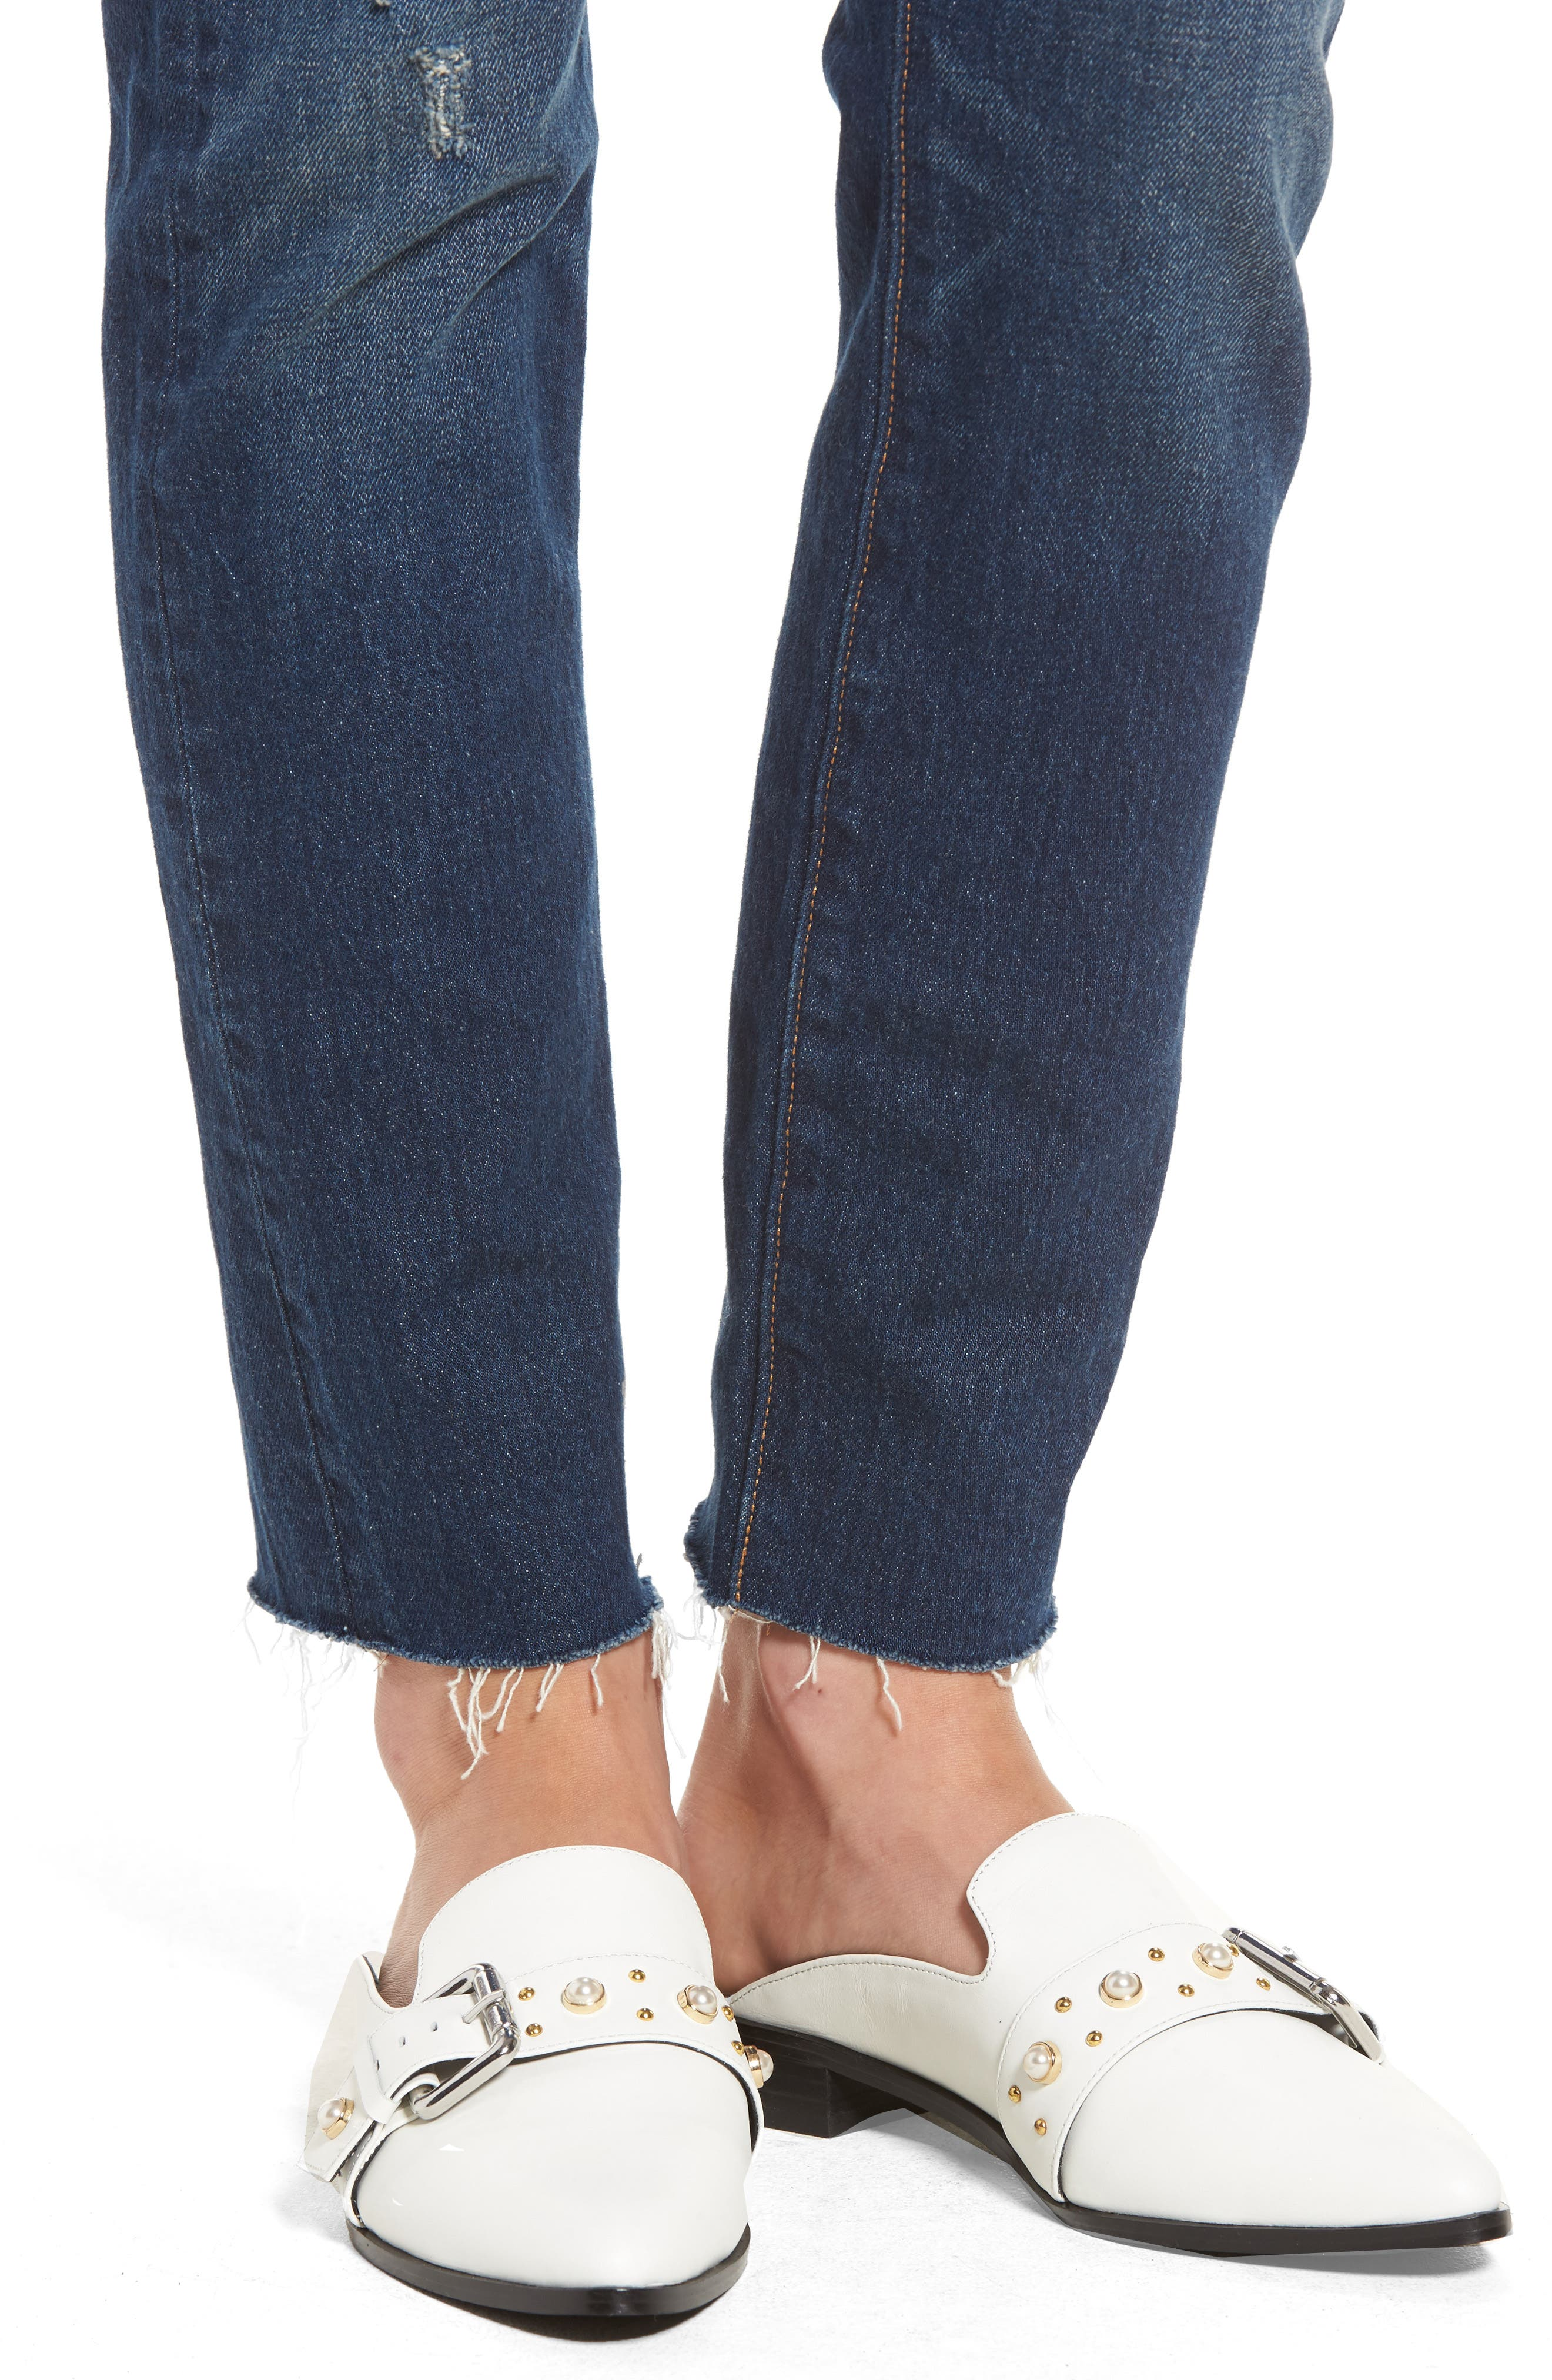 Levis<sup>®</sup> 501 Raw Hem Skinny Jeans,                             Alternate thumbnail 7, color,                             Song For Forever